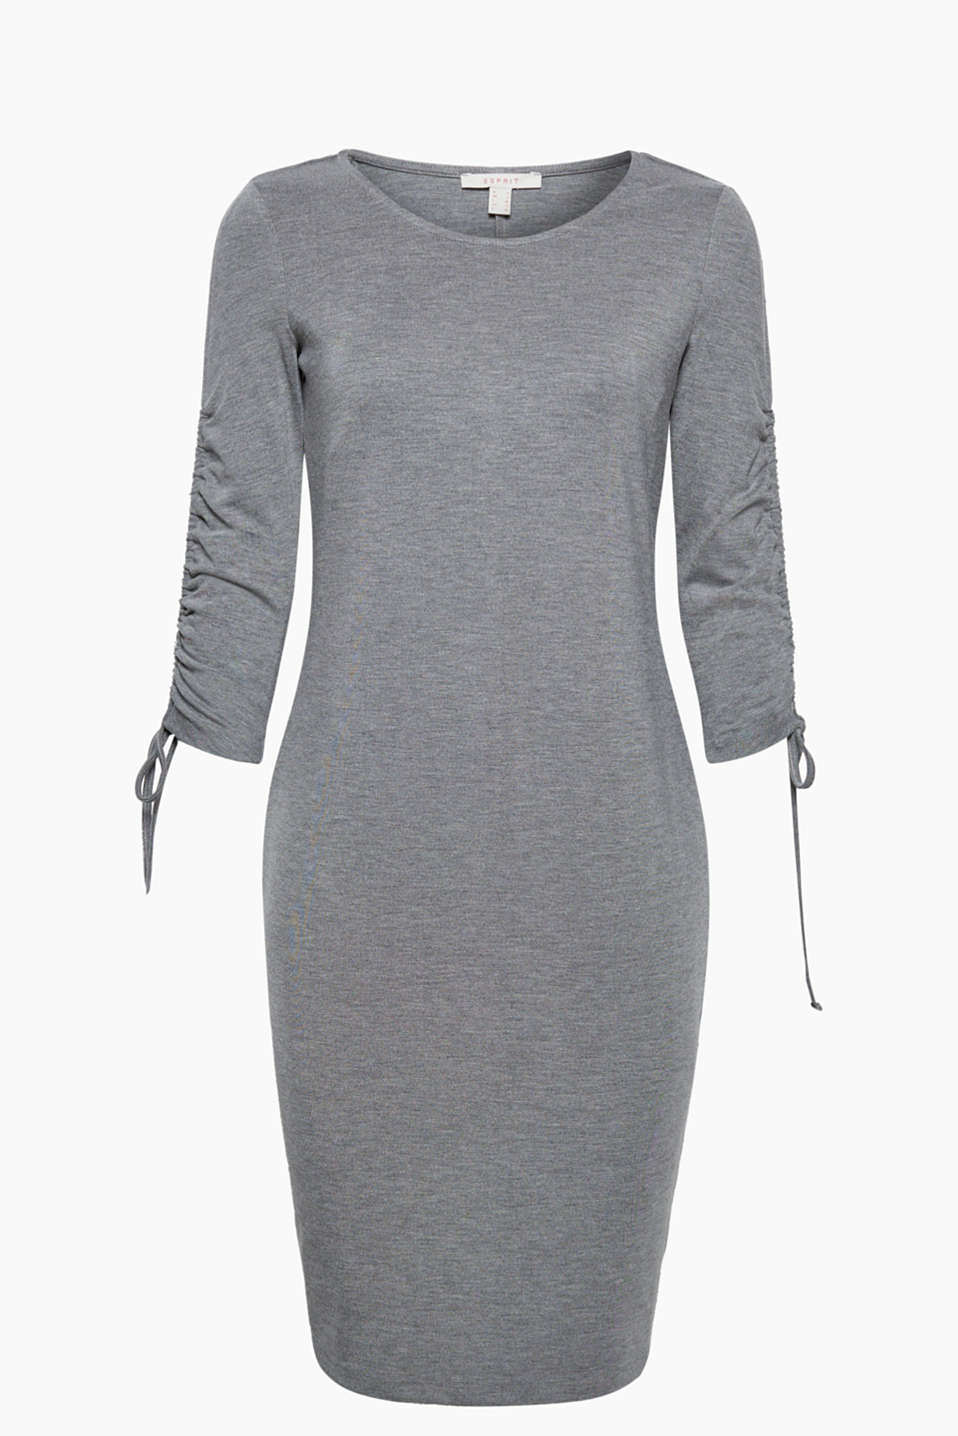 This comfortable shift dress in melange stretch jersey with gathered sleeves has a comfy style with a couture touch